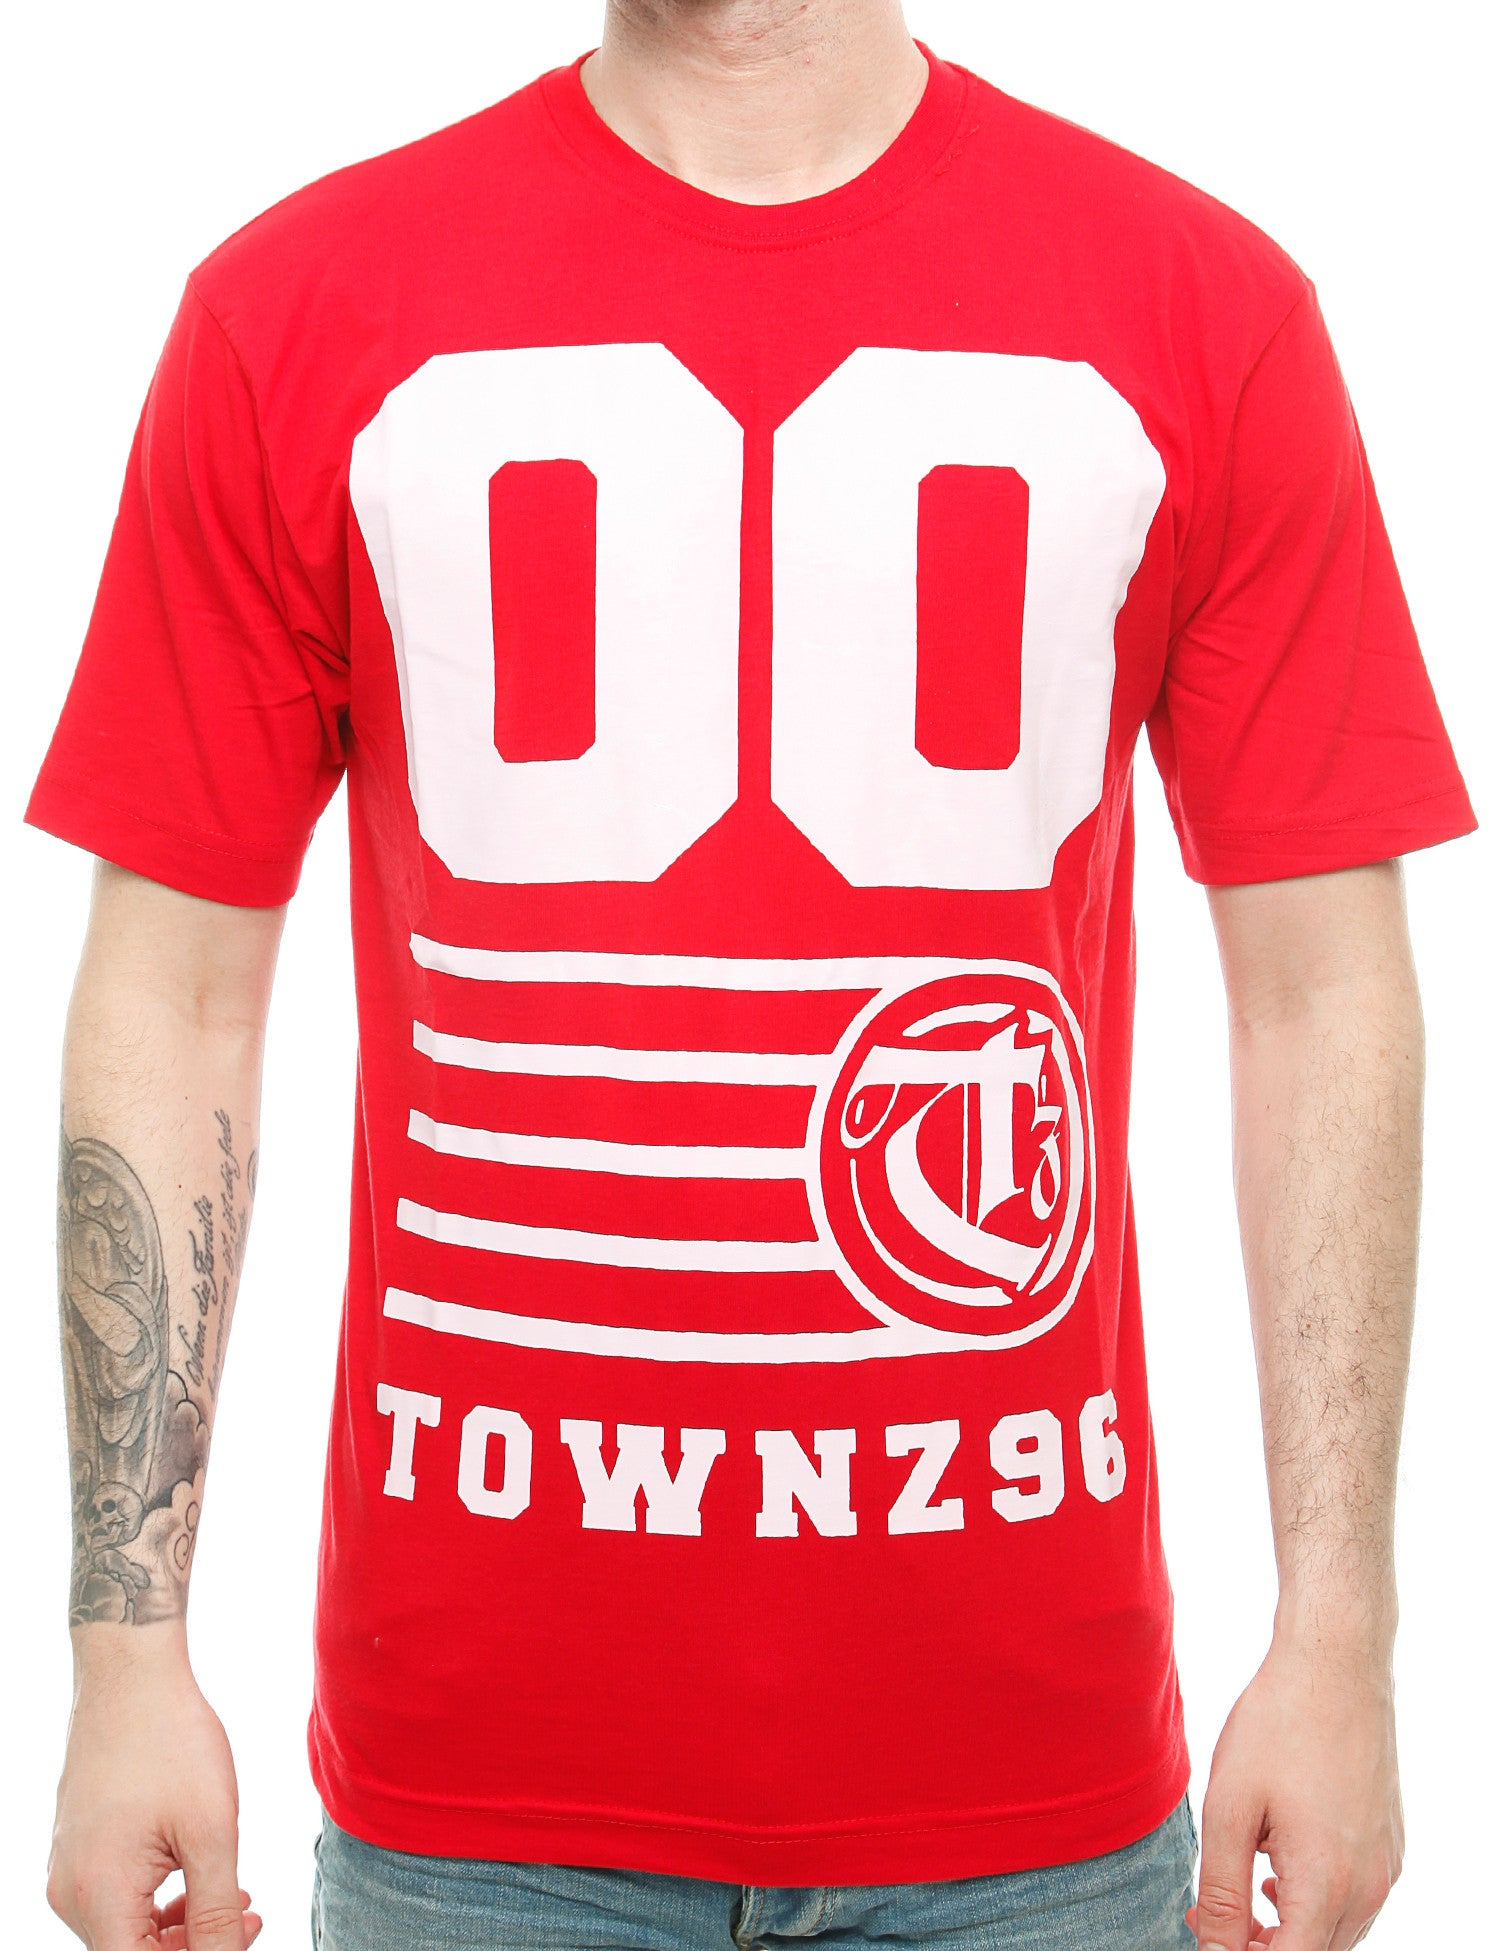 Townz 96 T-Shirt TNZ16-004 Red Red